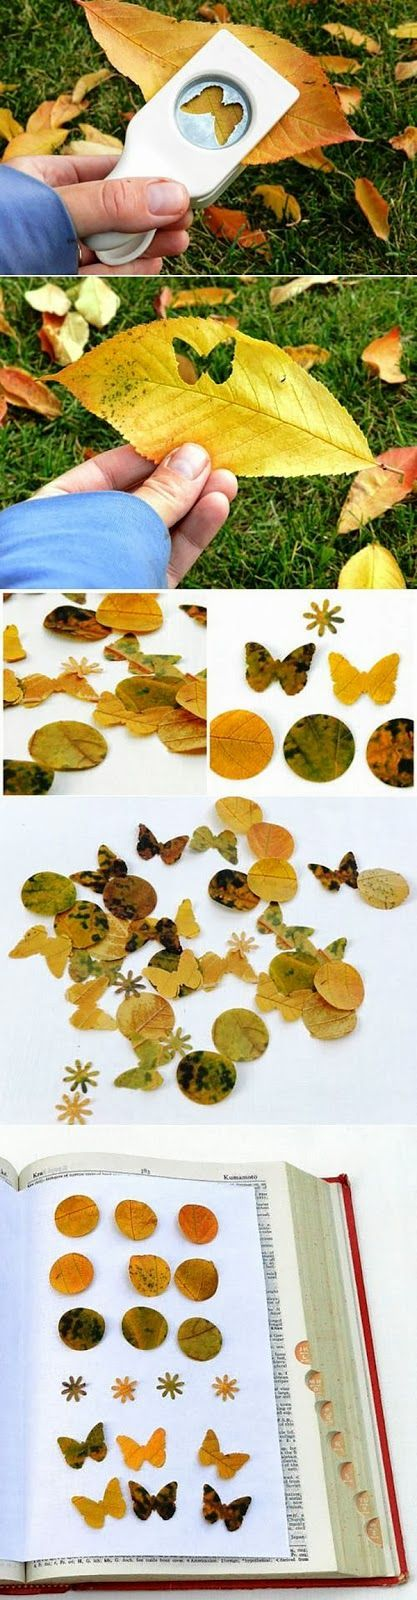 Craft Punched Leaves to create art for autumn #Kids #DIY #Crafts